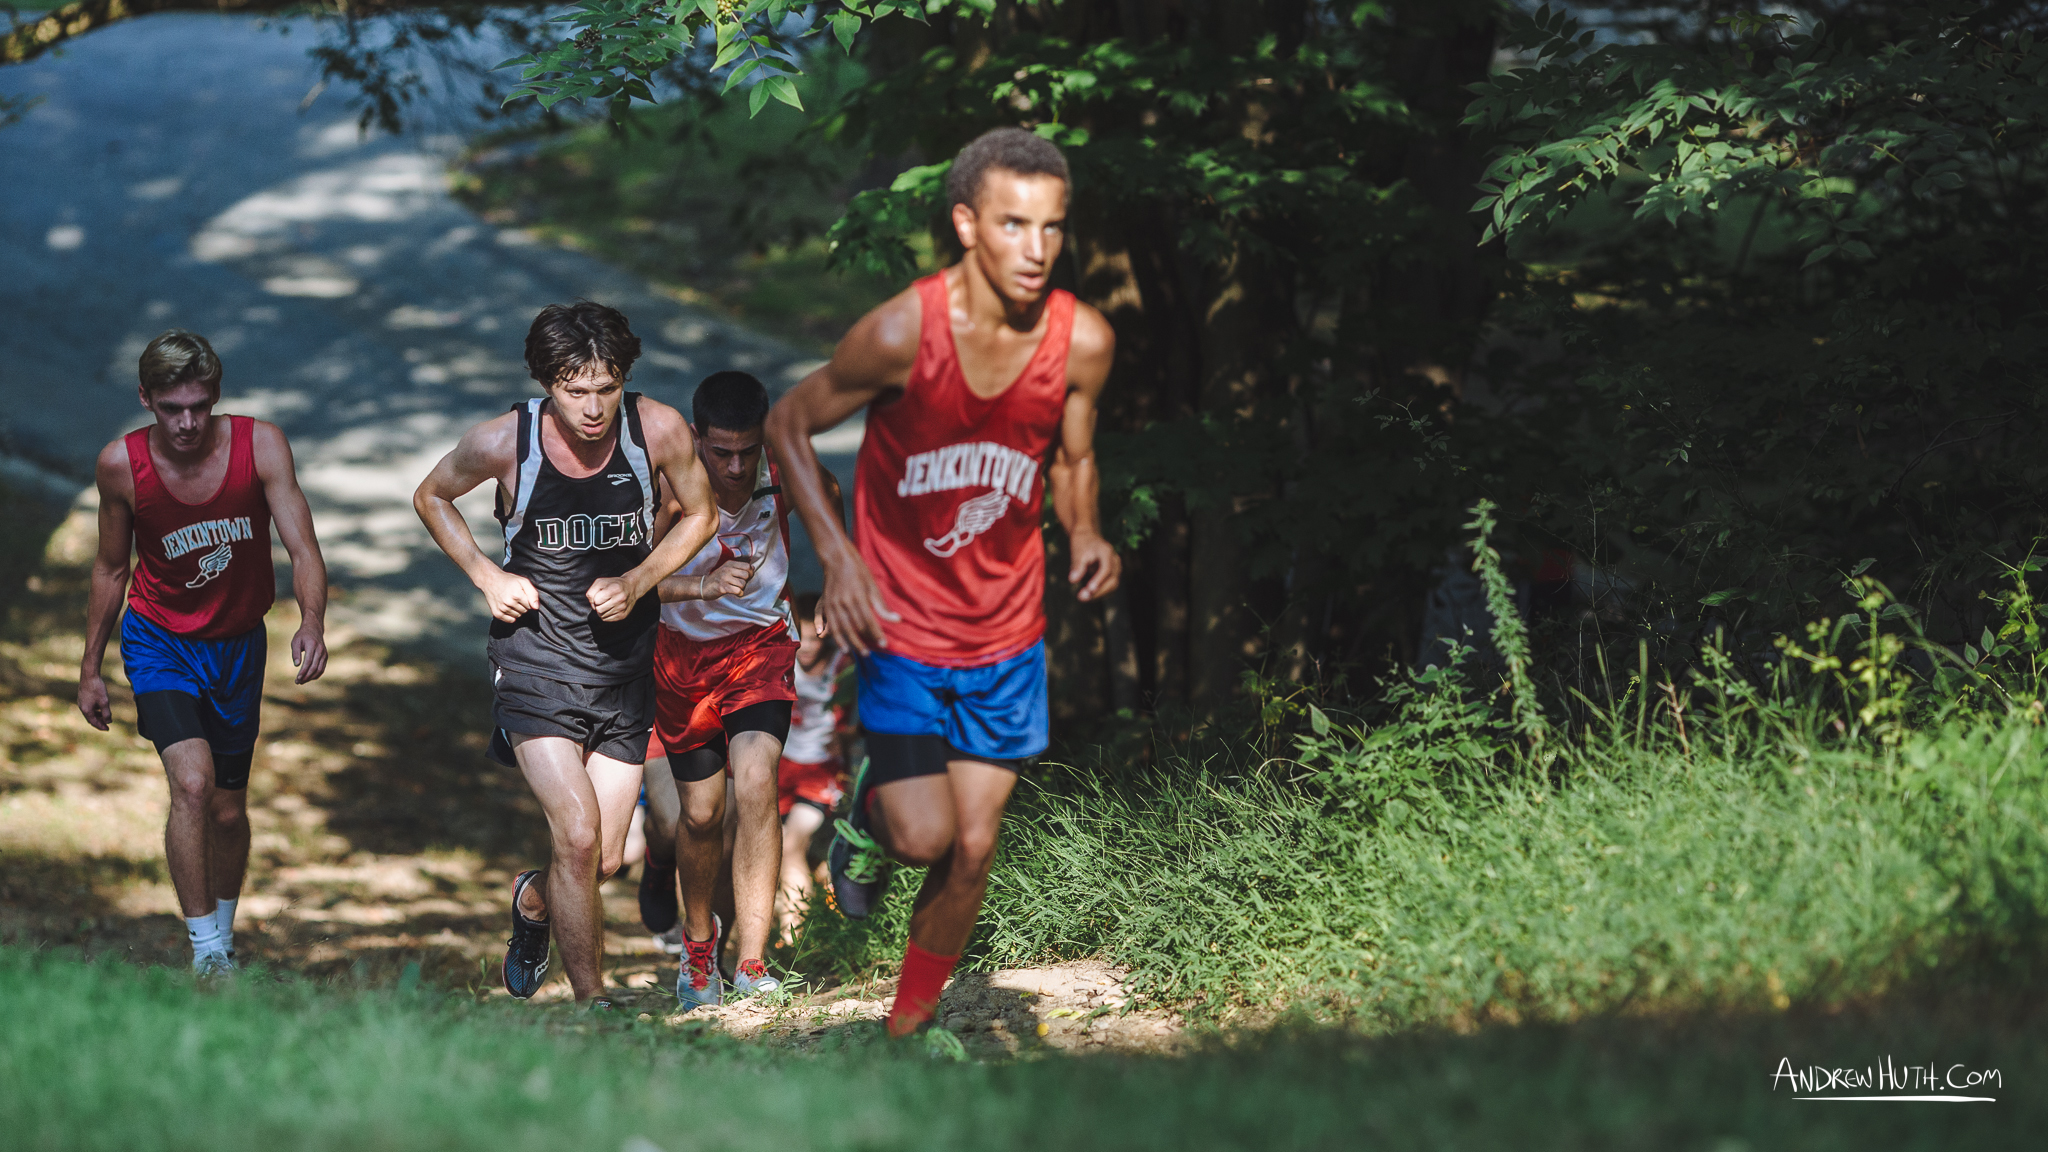 andrew_huth_cd_xcountry_jank_010.jpg